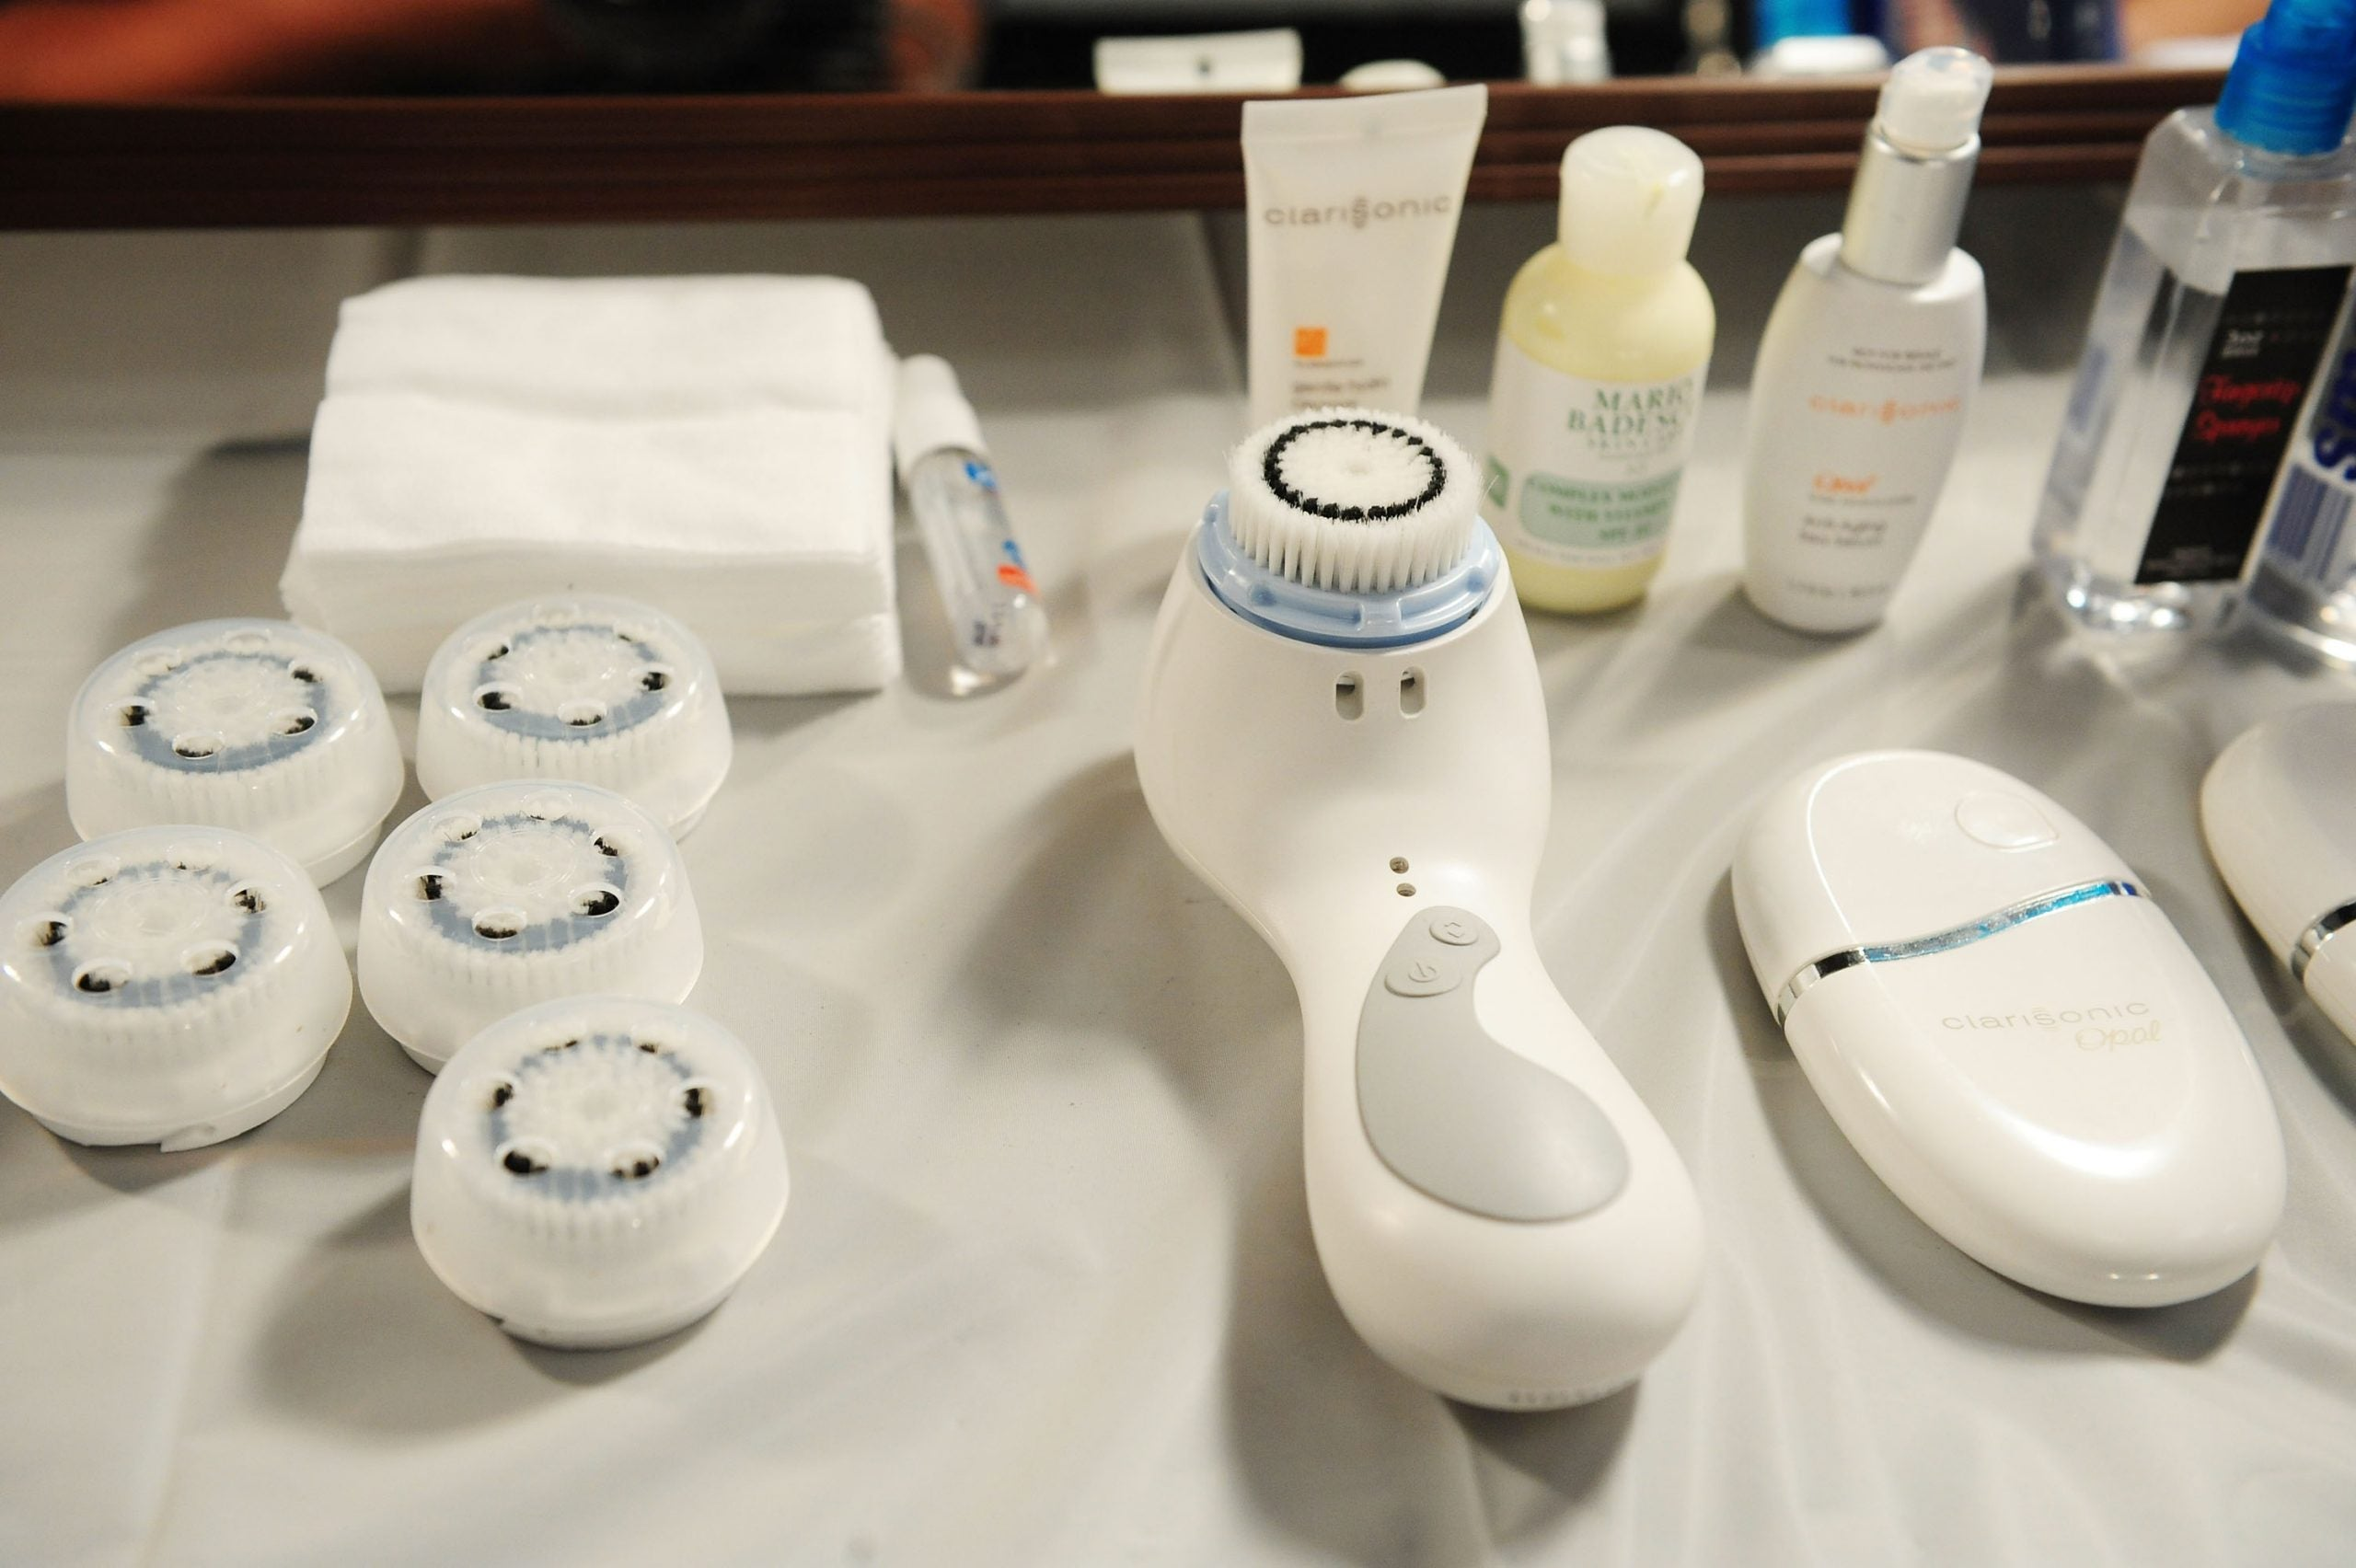 Clarisonic Is Having A Huge Going-Out-Of-Business Sale